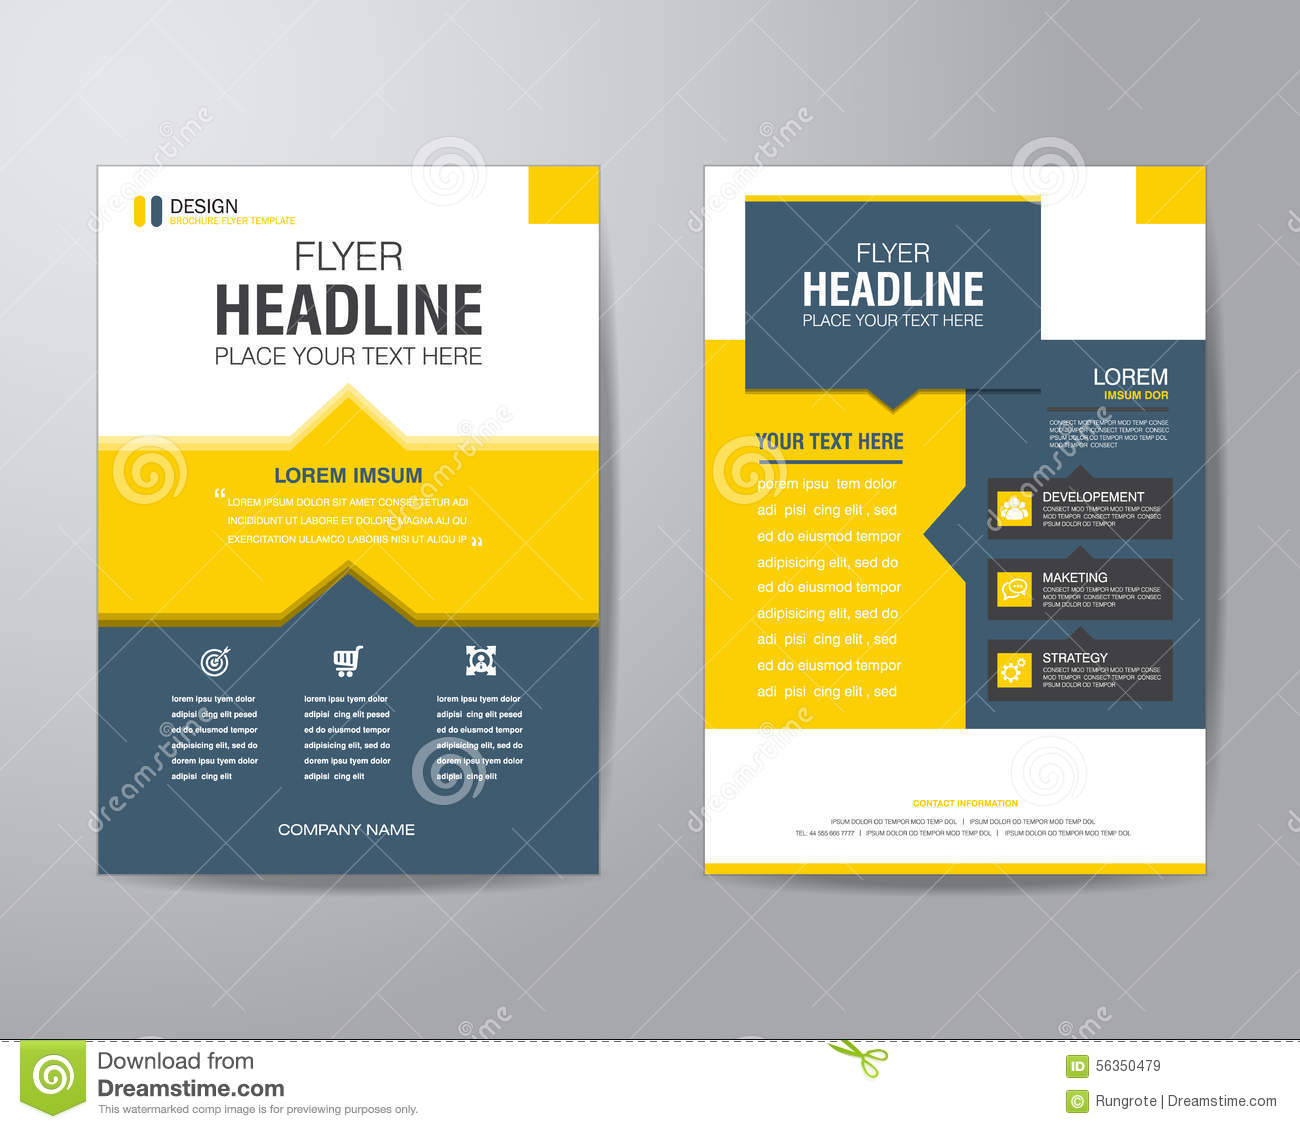 business brochures templates - business brochure flyer design layout template in a4 size